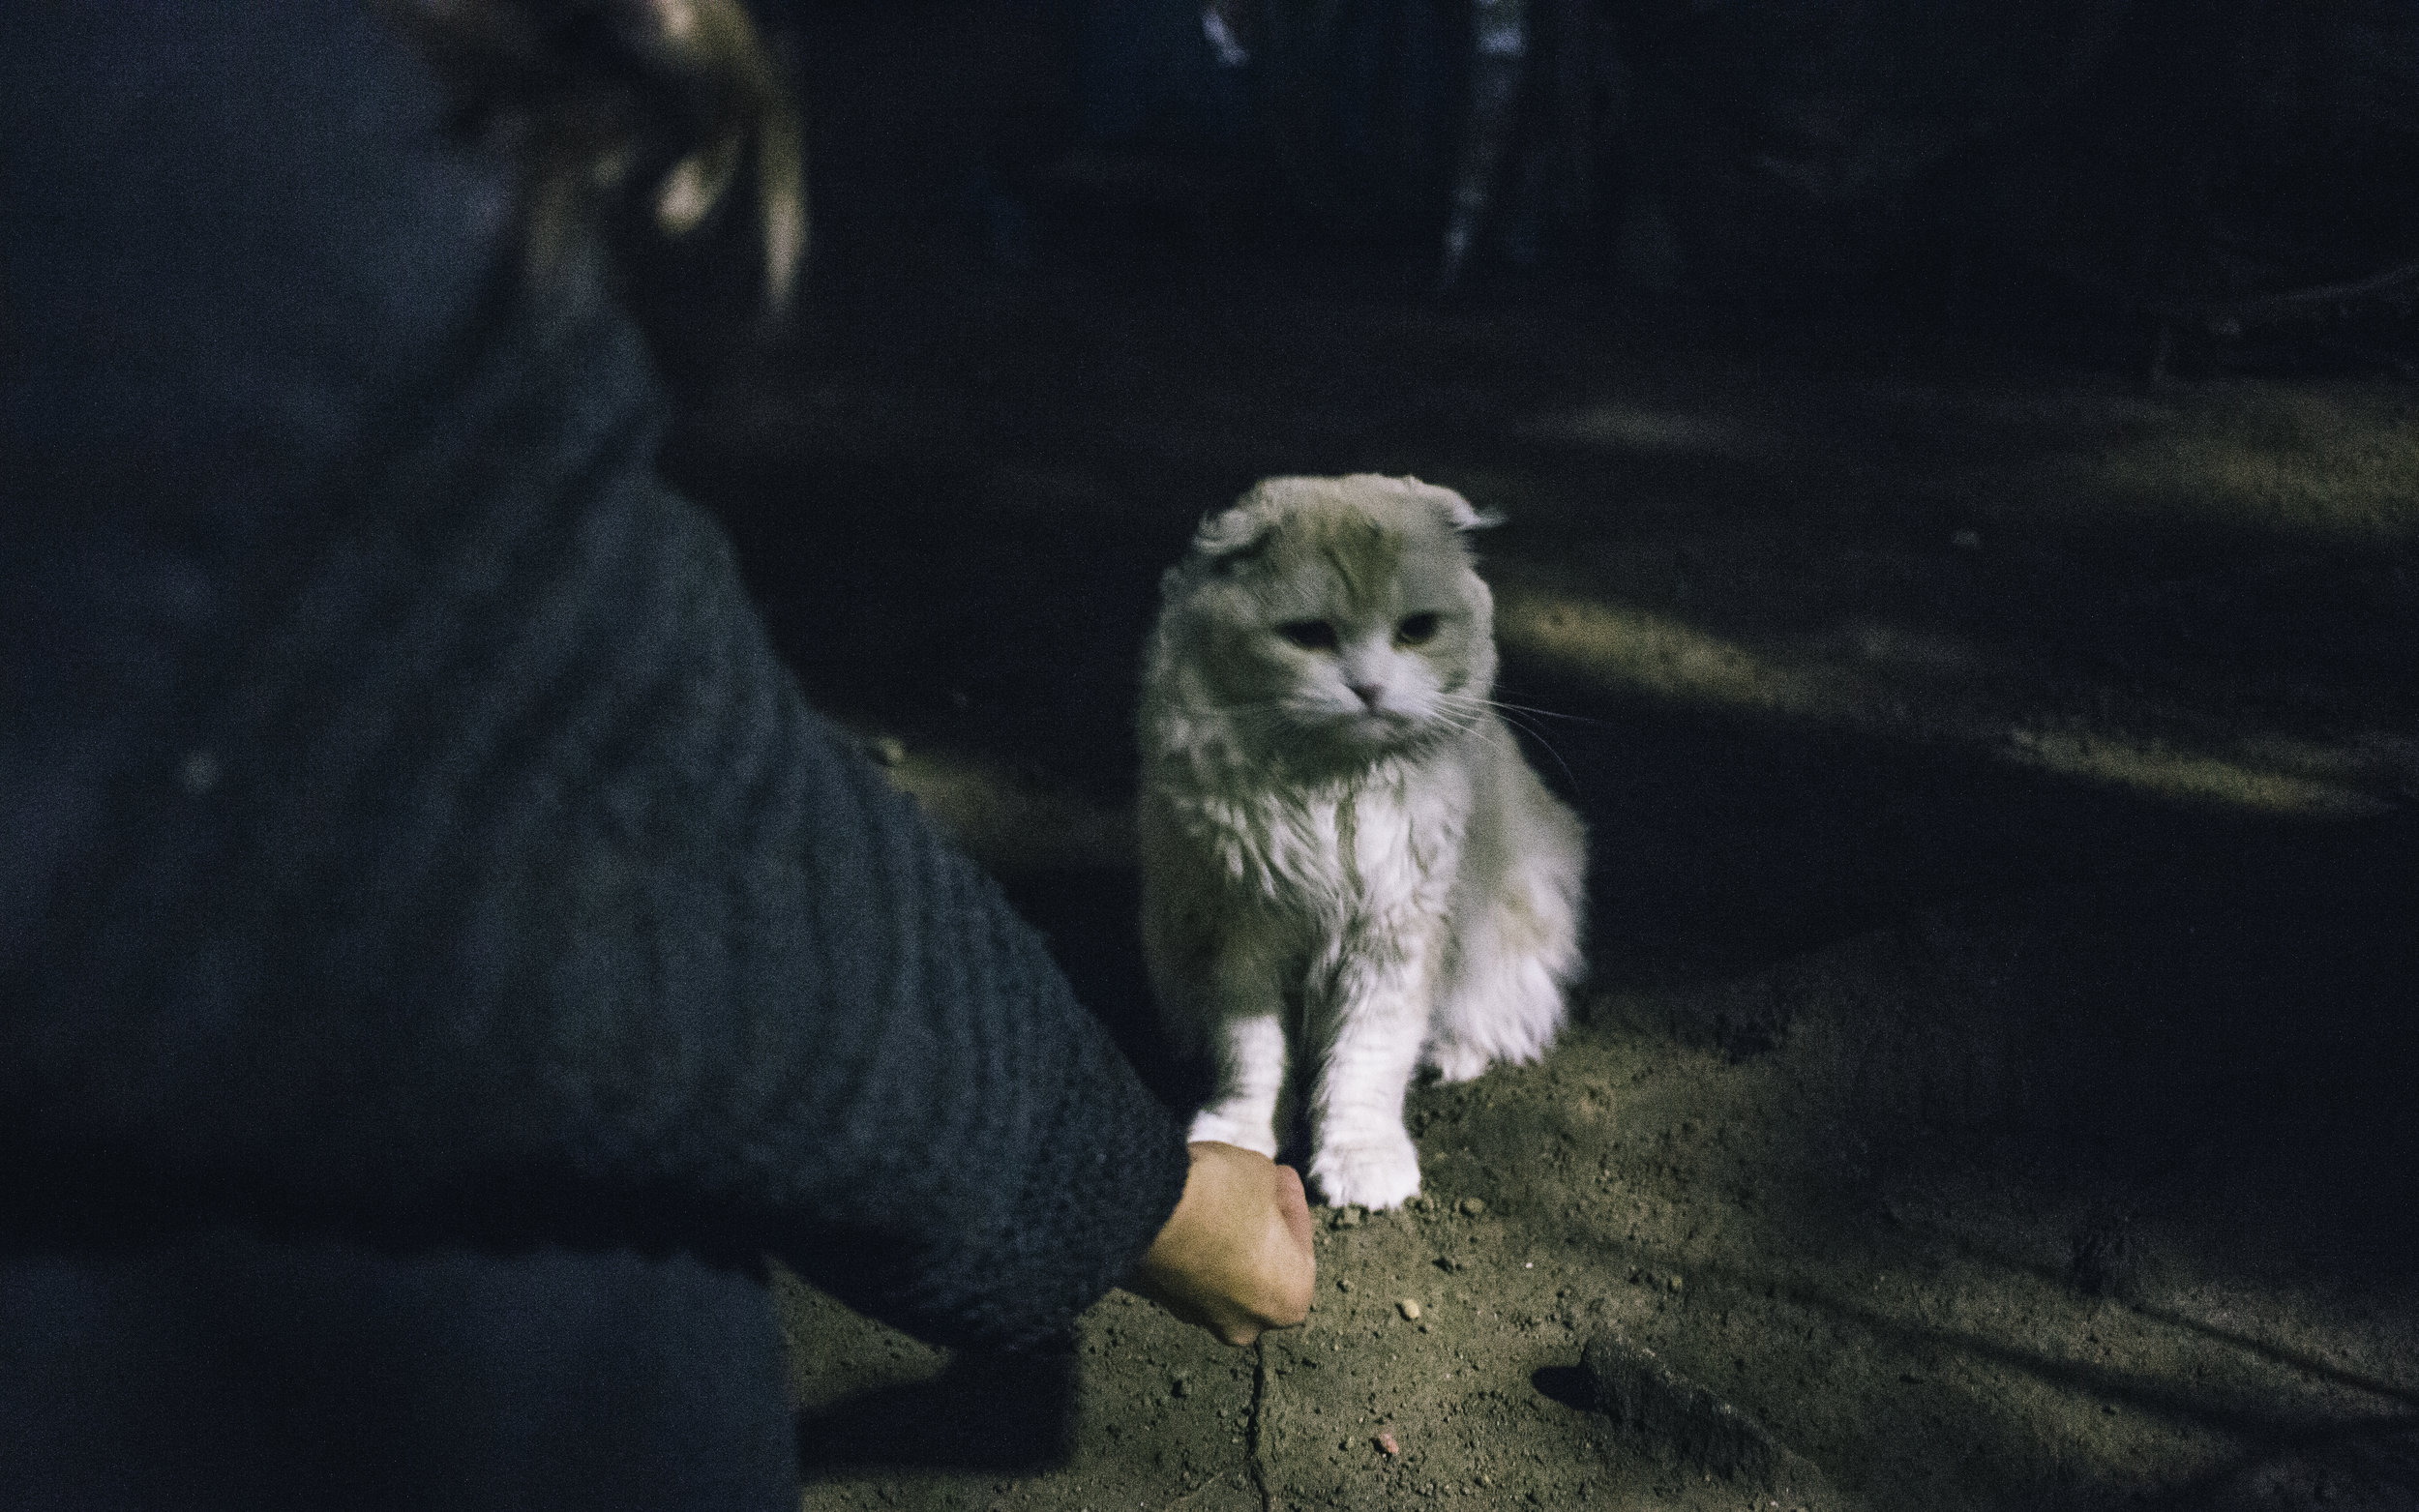 It appears to be a Persian/Scottish Fold mix.